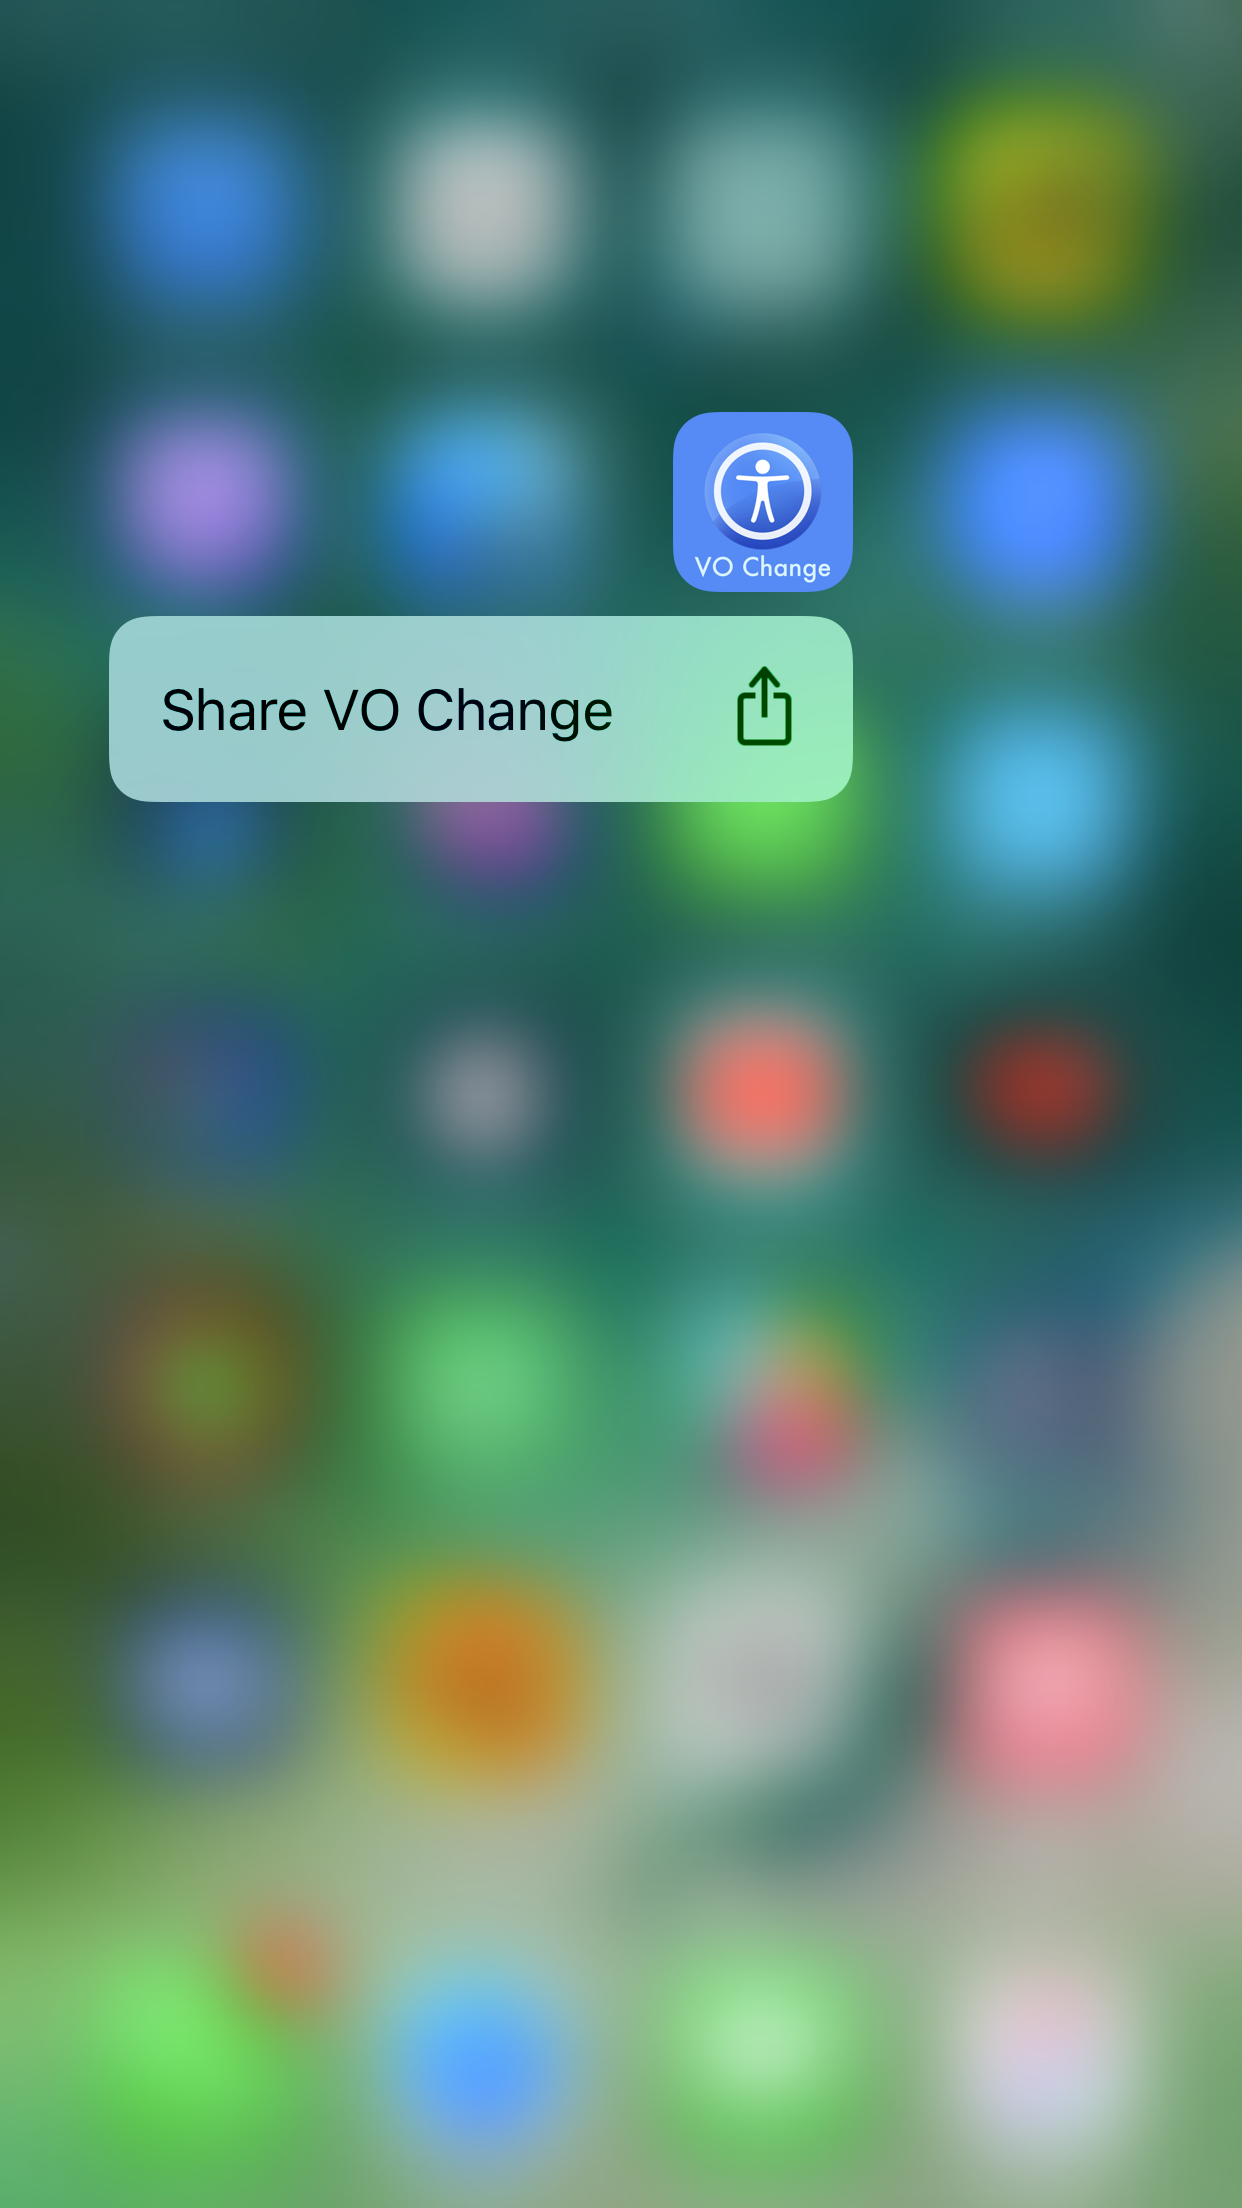 Image showing VO Change app icon with Share 3D Touch Item.